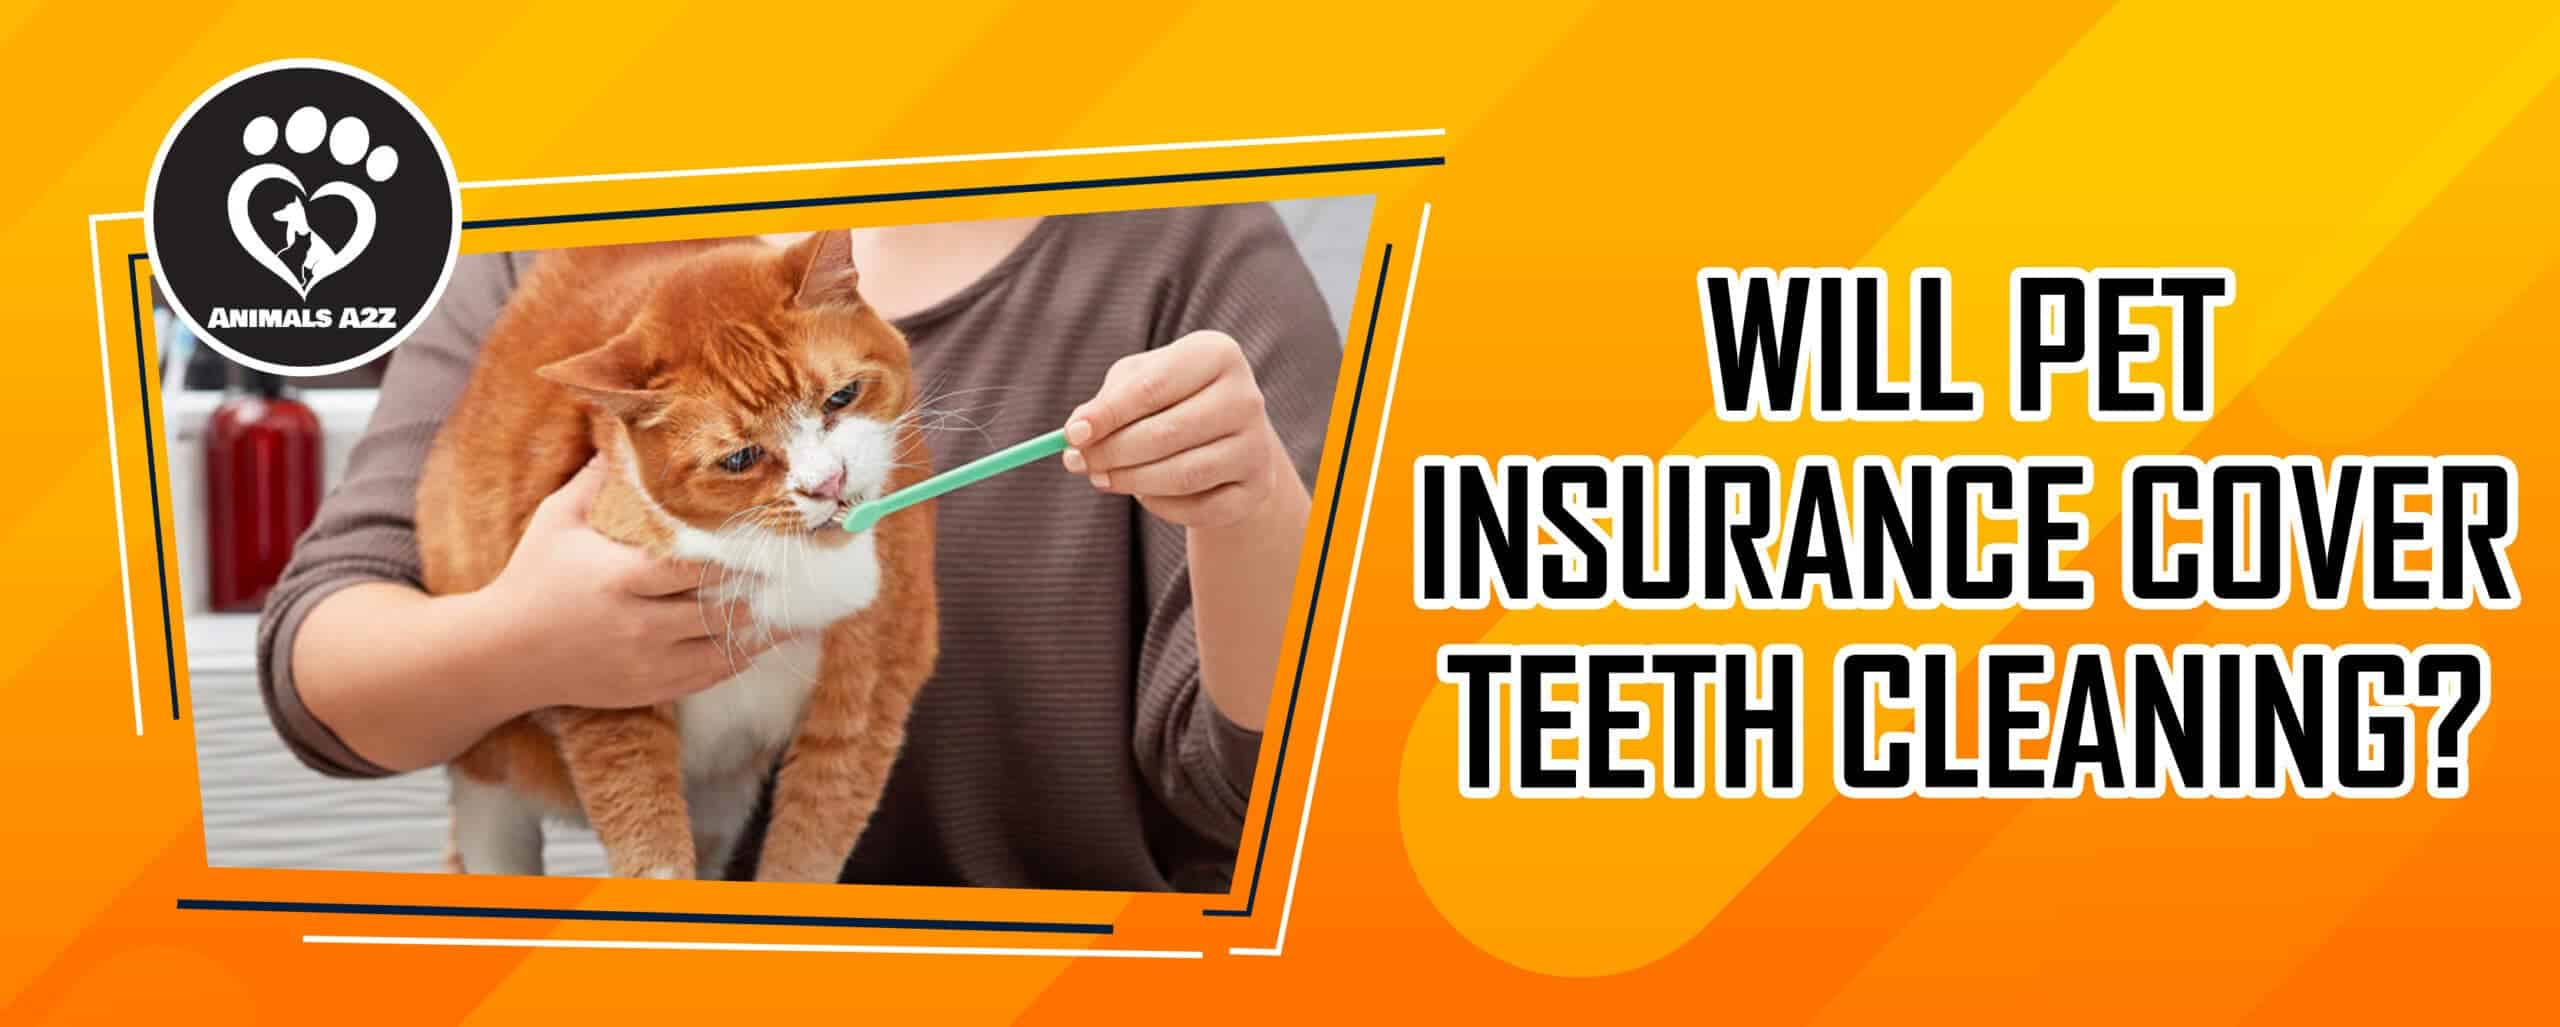 Will Pet Insurance Cover teeth cleaning?